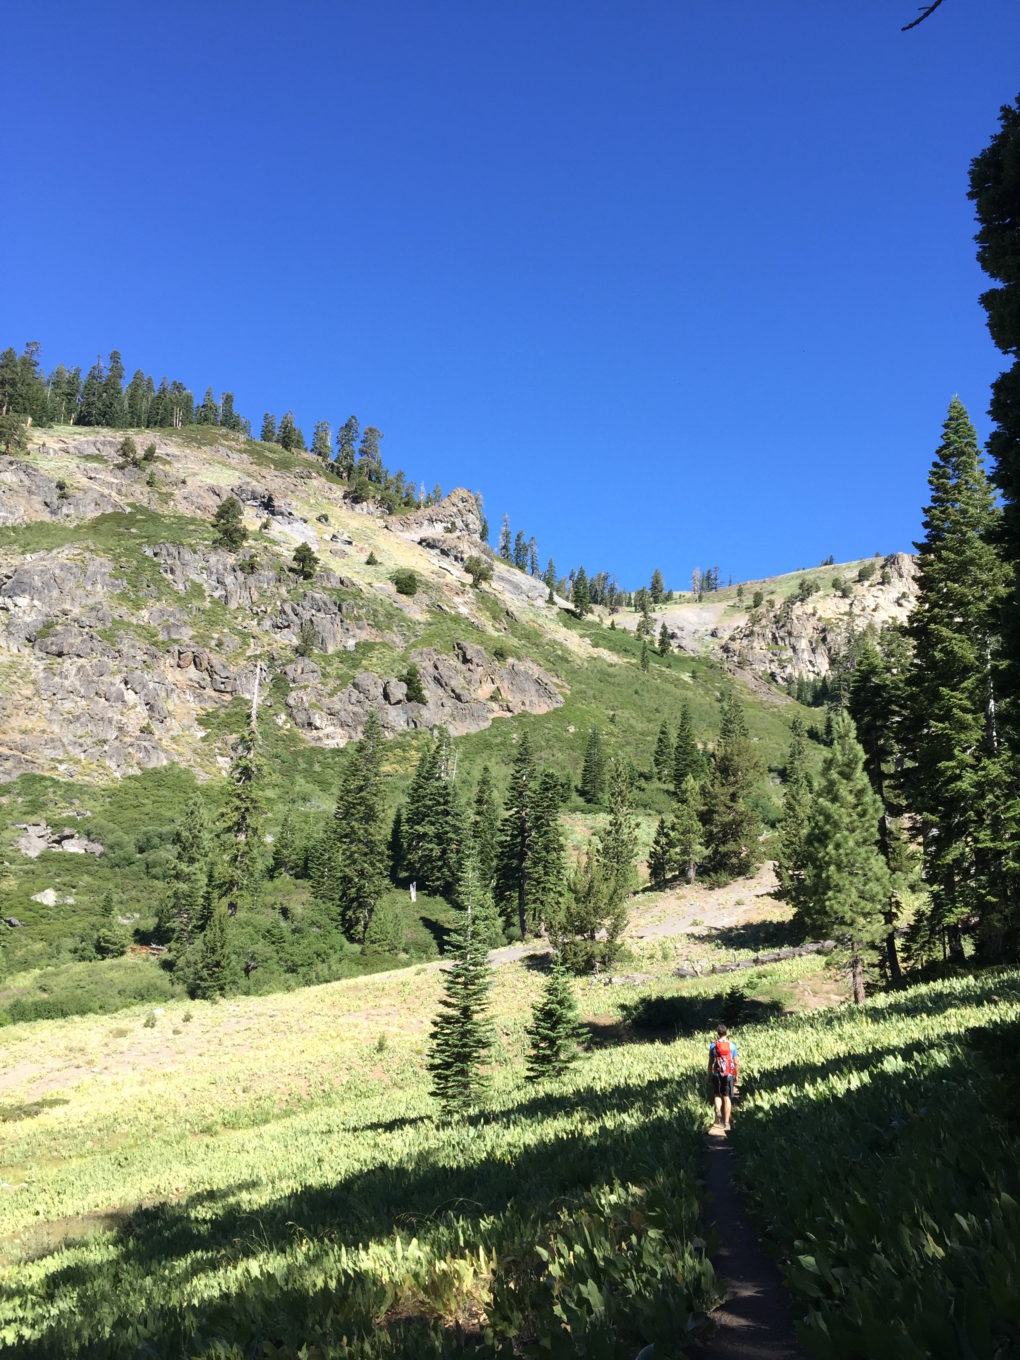 072716_SquawValley4